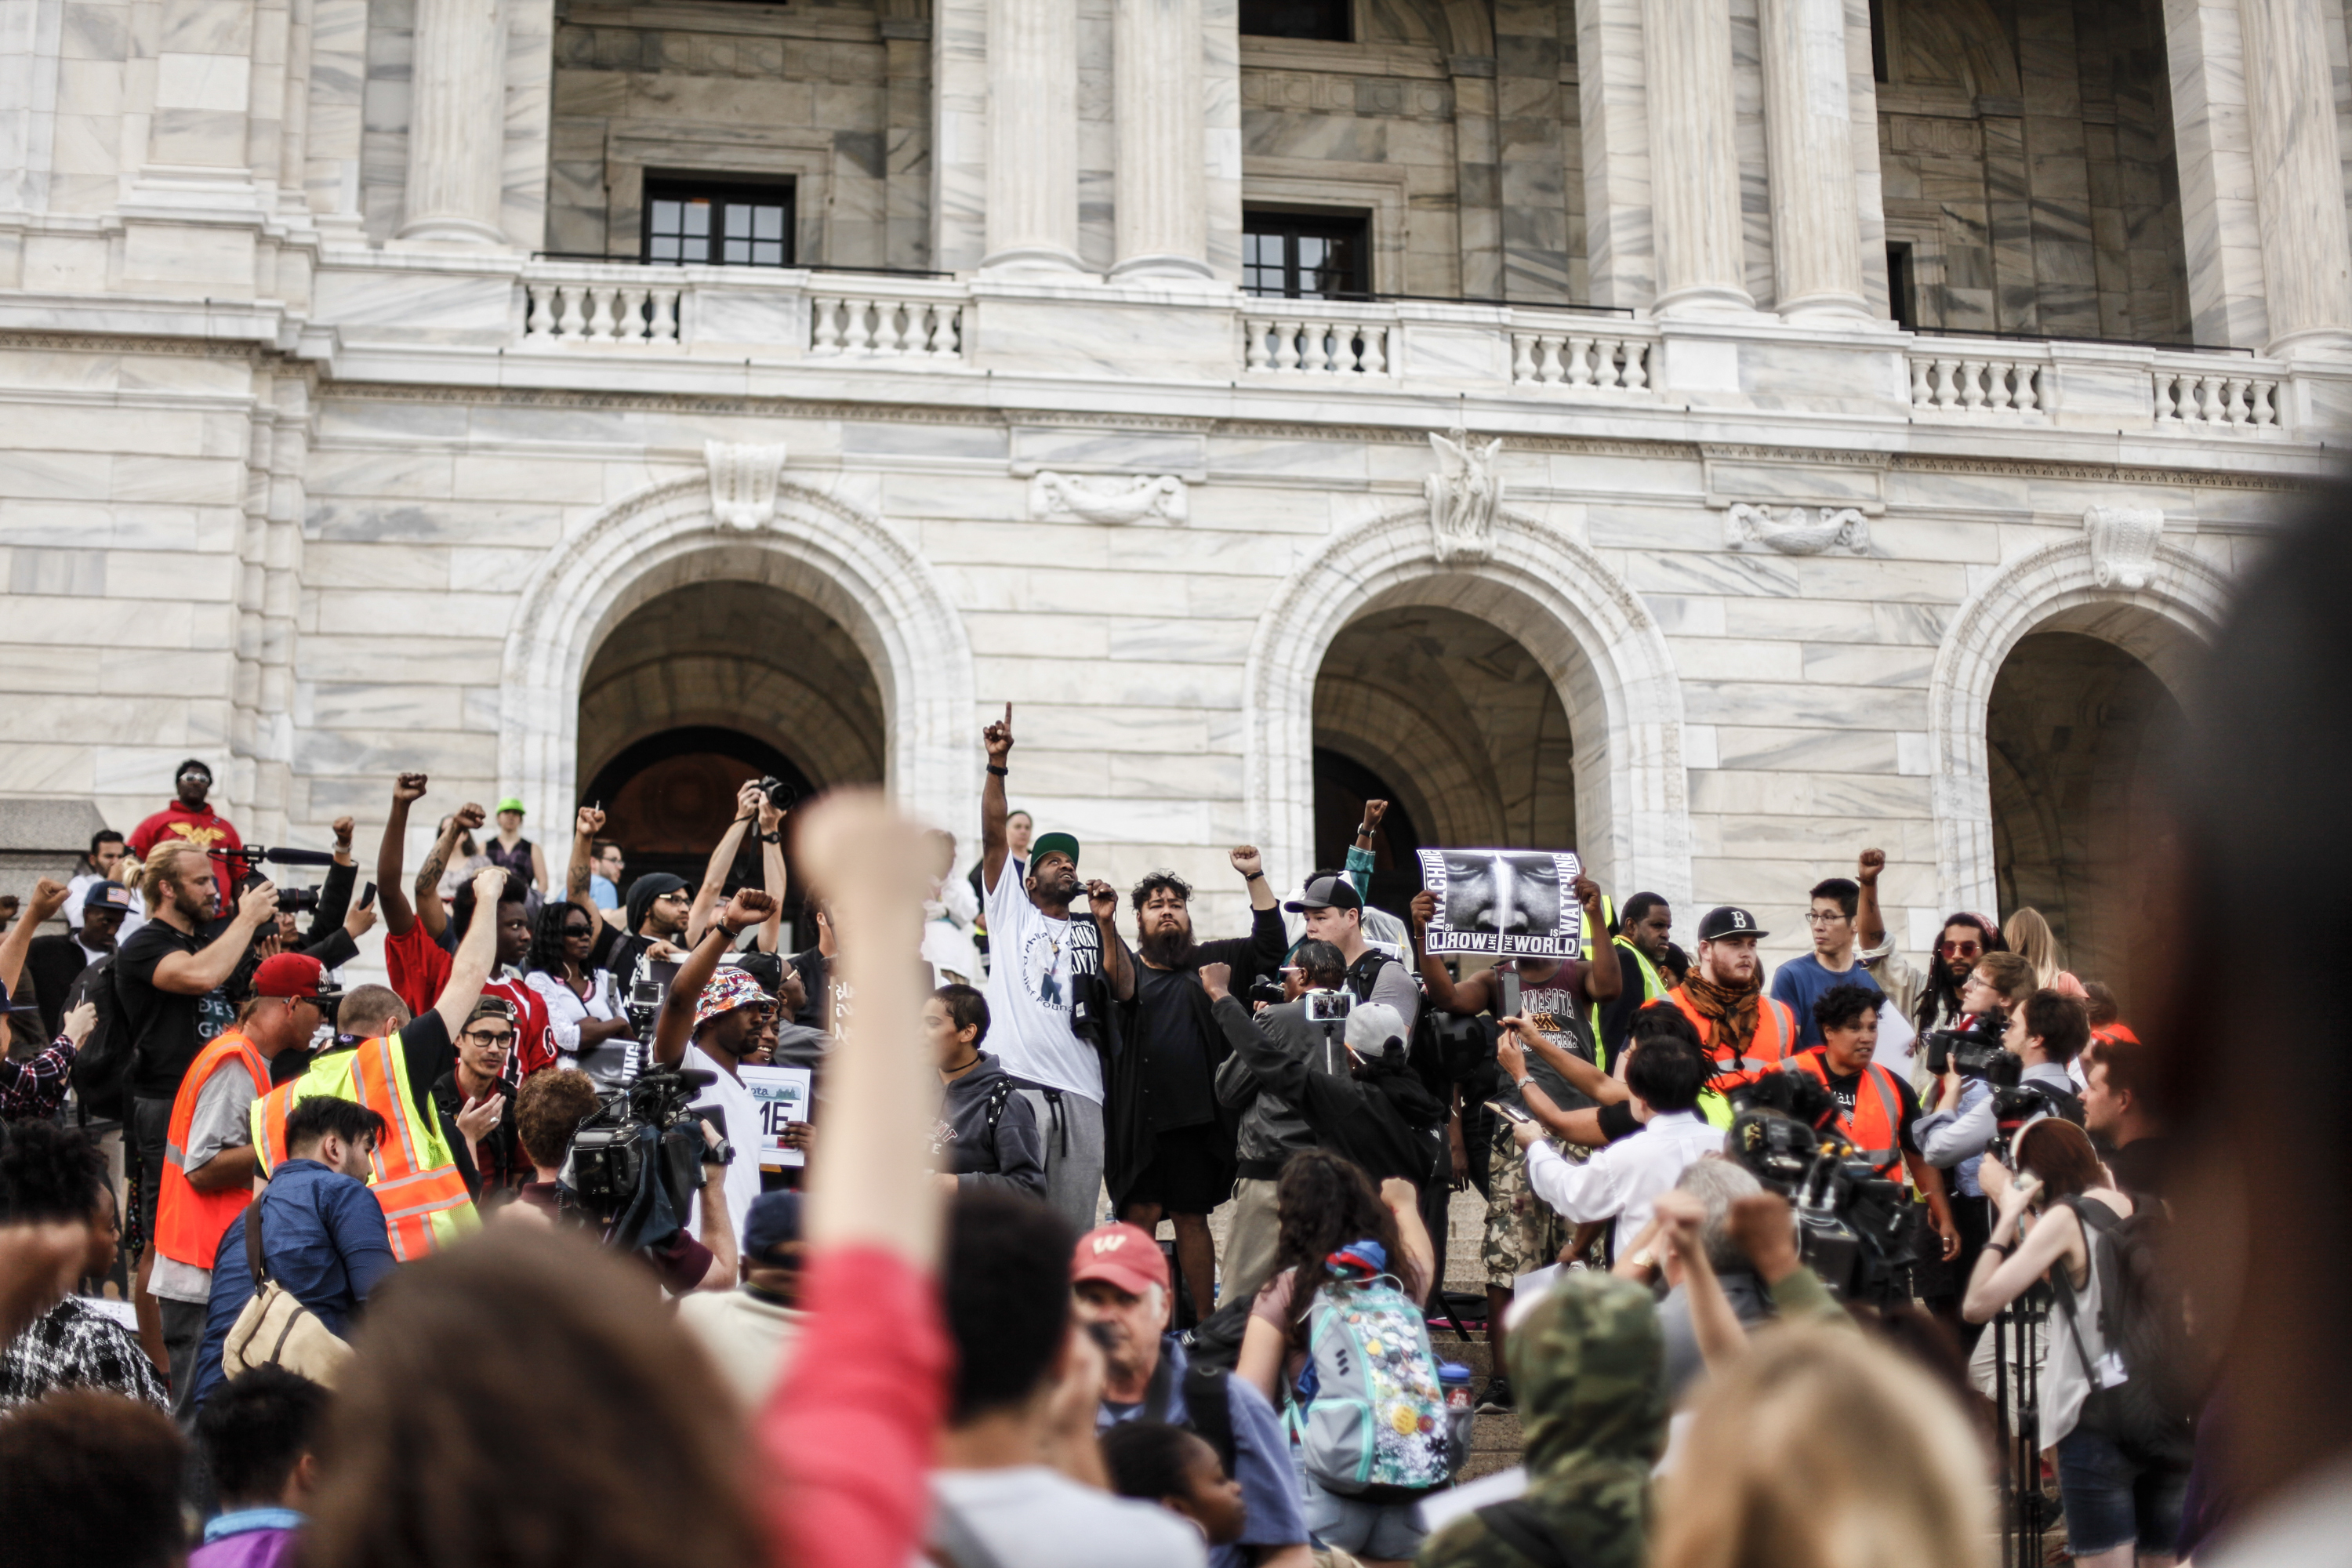 Protesters and family members of Philando Castile gather outside the state Capitol in St. Paul, Minn., Friday June 16, 2017. A Minnesota police officer was cleared earlier Friday in the fatal shooting of Castile, a black motorist whose death captured national attention when his girlfriend streamed the grim aftermath on Facebook. (Maria Alejandra Cardona/Minnesota Public Radio via AP)